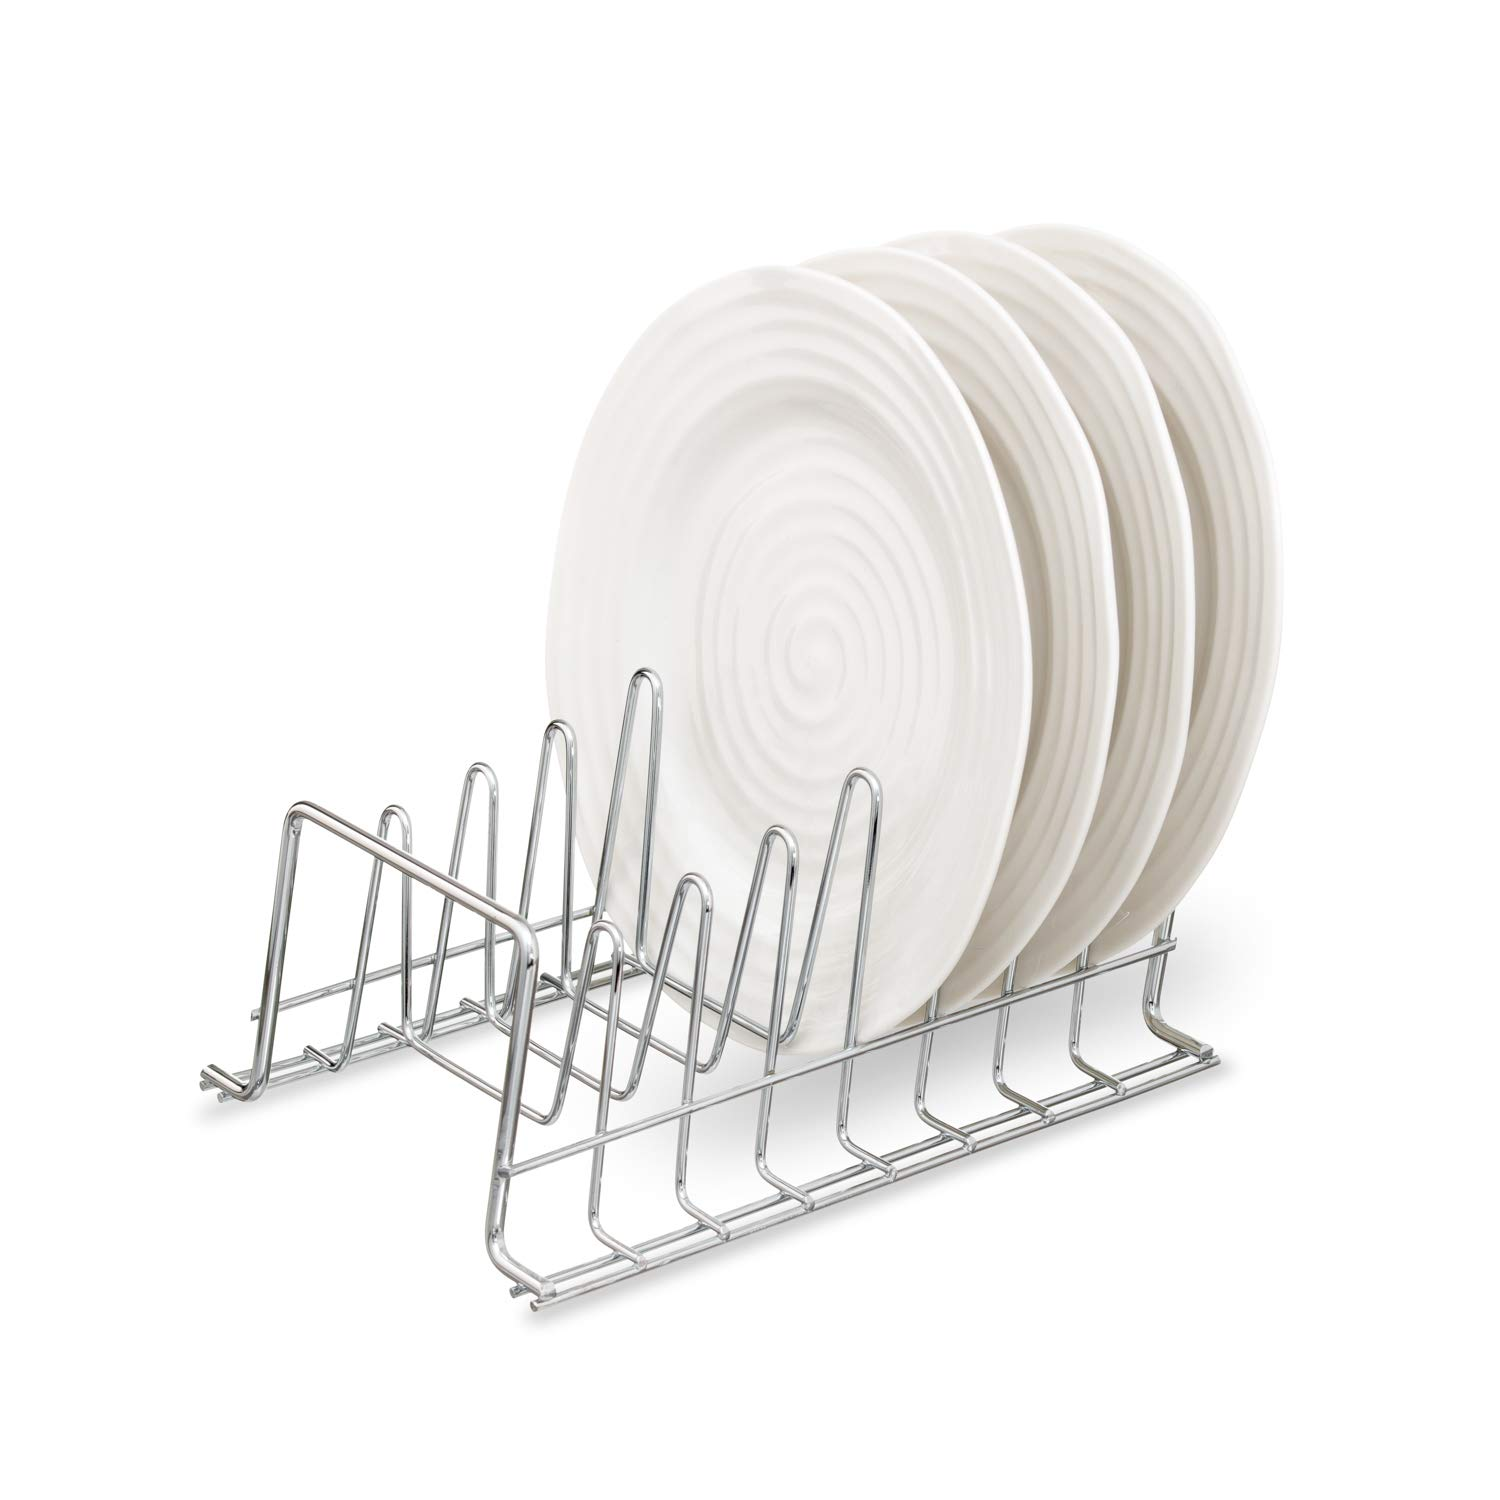 simplywire - Plate Rack / Drainer - Kitchen Cupboard Storage Organiser - Chrome - Small